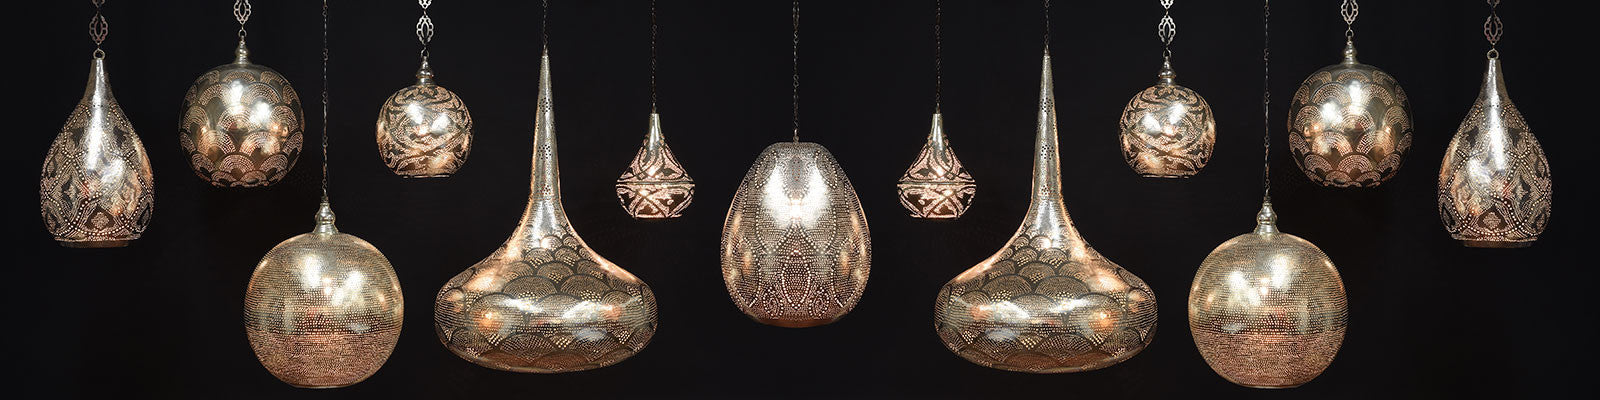 Antique Handmade Hanging Lamps